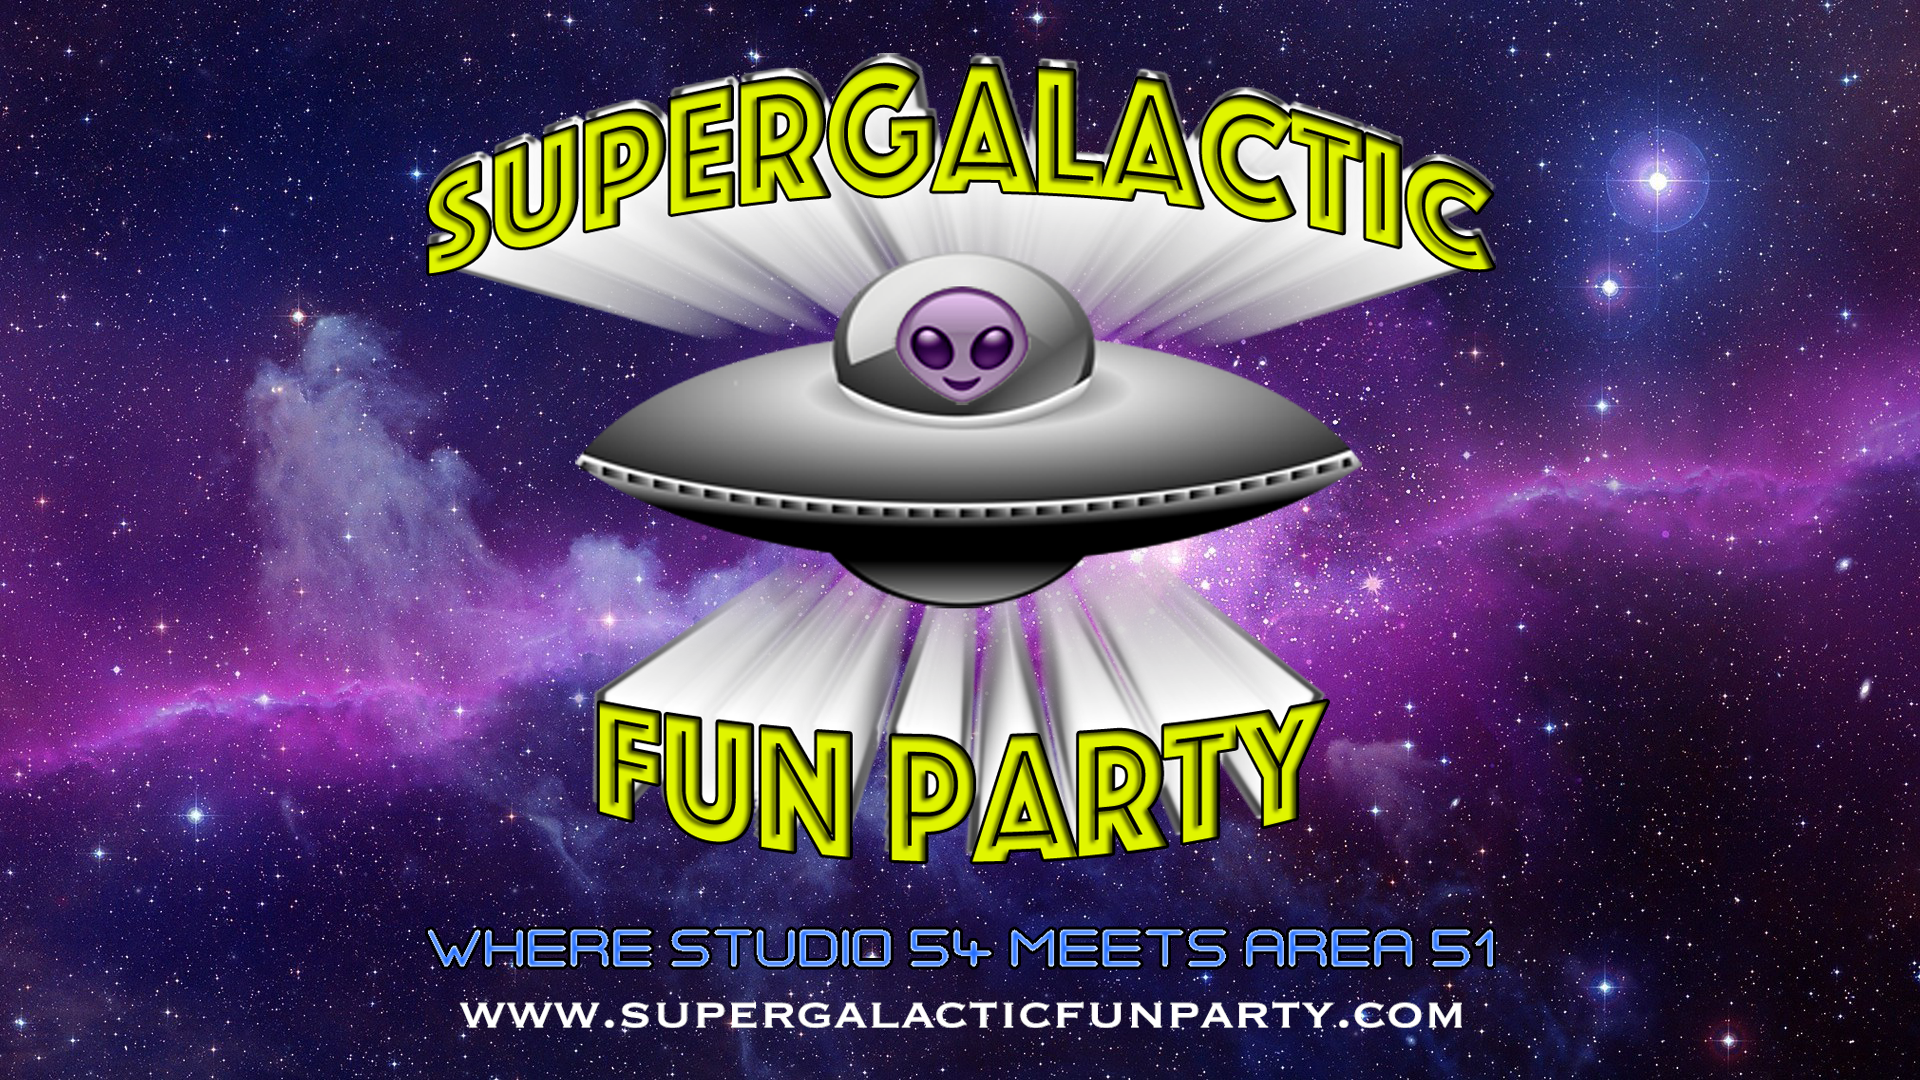 Supergalactic Fun Party